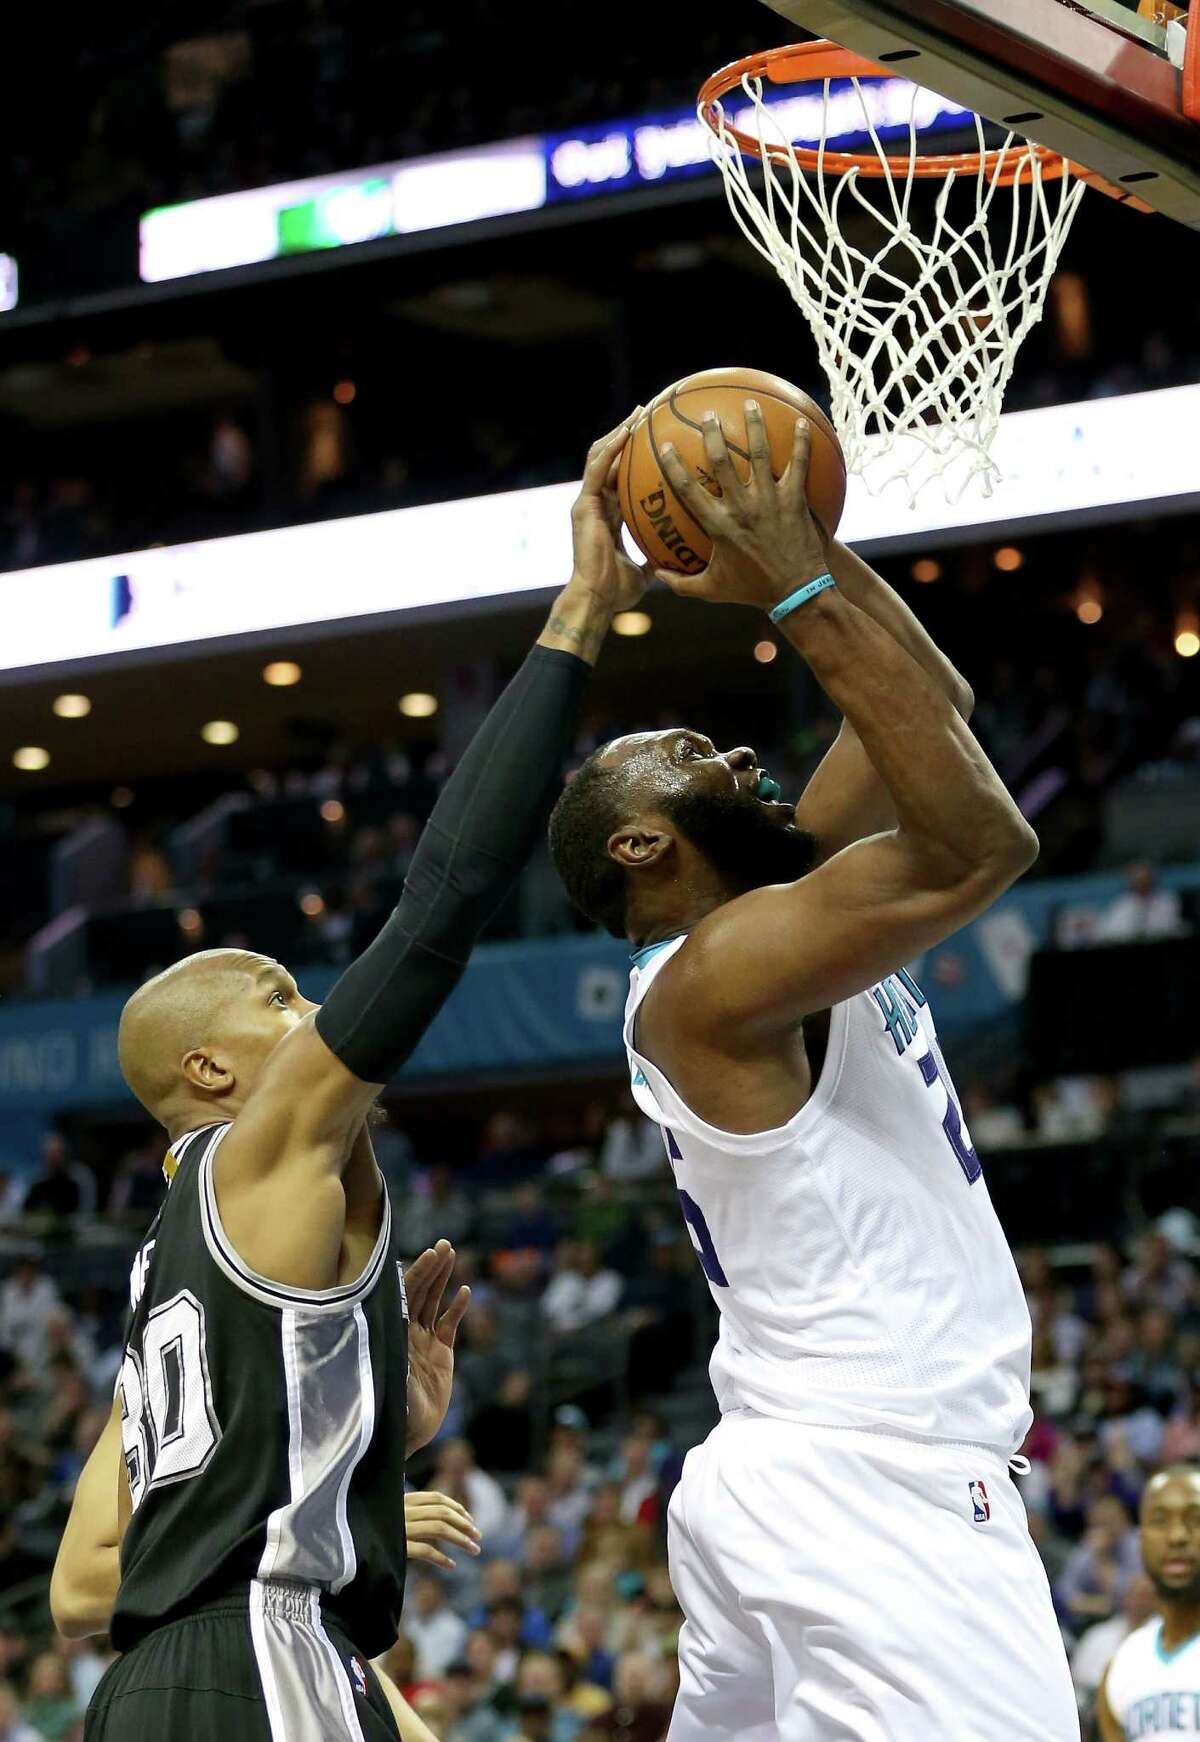 CHARLOTTE, NC - MARCH 21: David West #30 of the San Antonio Spurs tries to stop Al Jefferson #25 of the Charlotte Hornets during their game at Time Warner Cable Arena on March 21, 2016 in Charlotte, North Carolina.NOTE TO USER: User expressly acknowledges and agrees that, by downloading and or using this photograph, User is consenting to the terms and conditions of the Getty Images License Agreement.